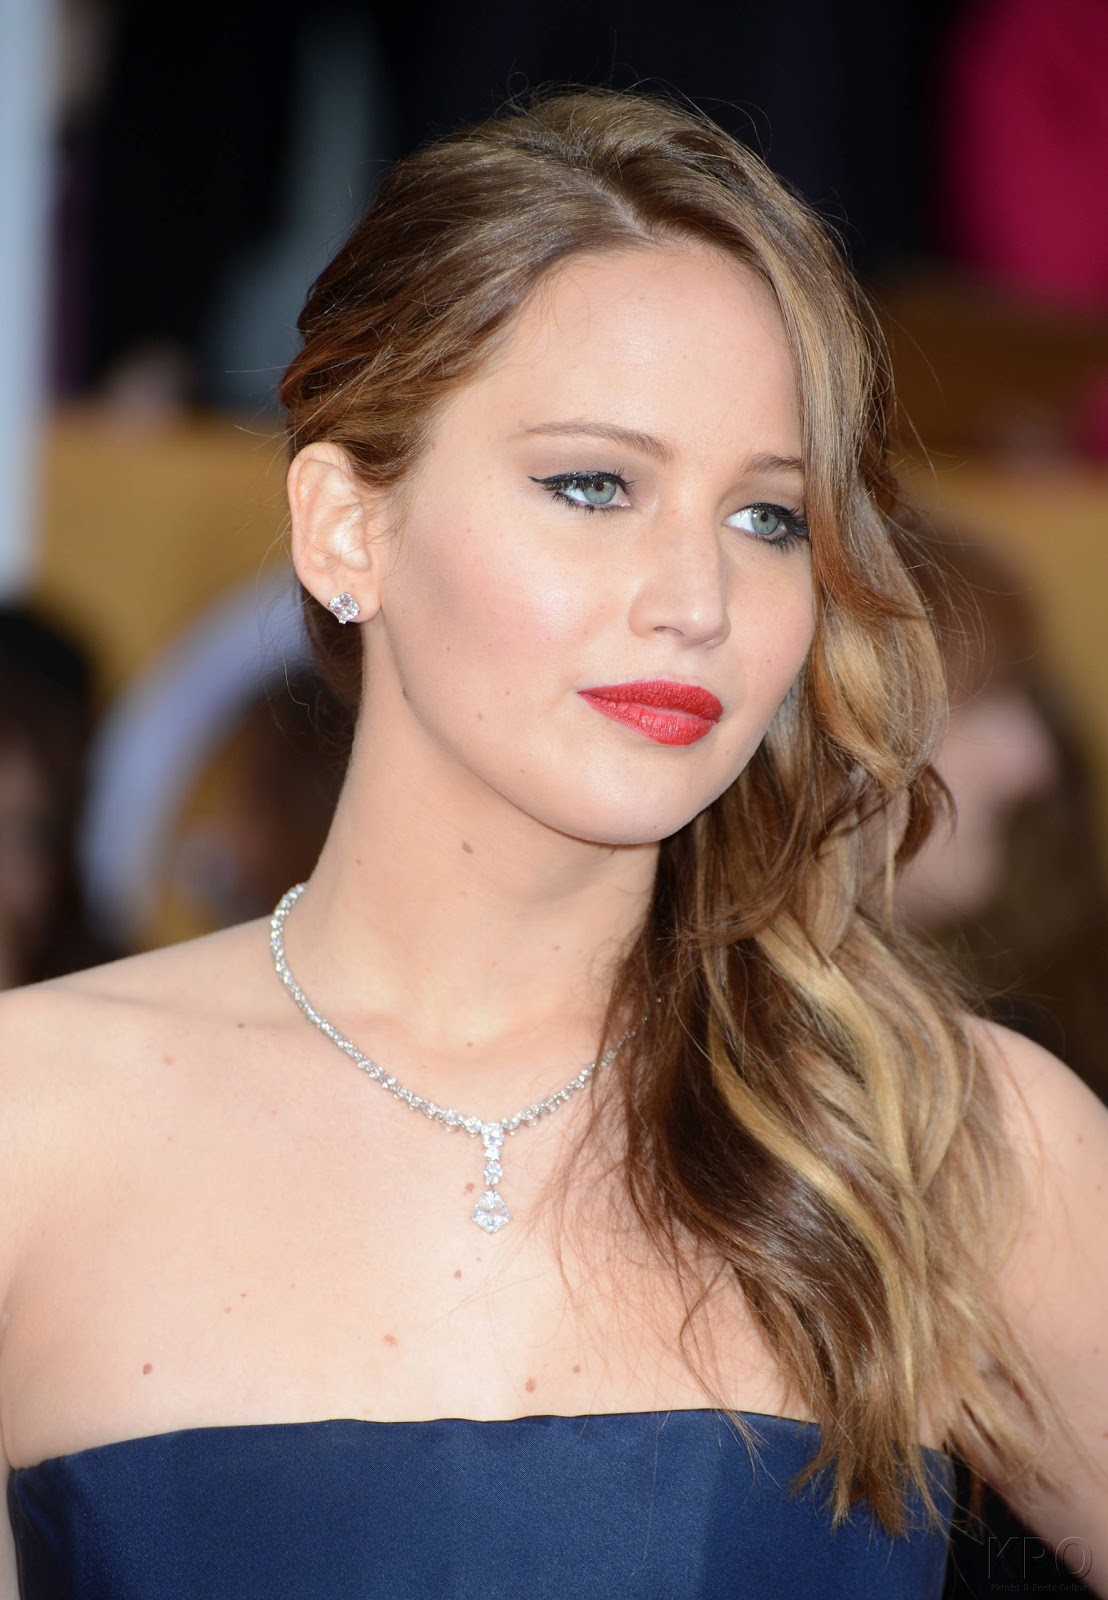 jennifer lawrence Welcome to miss jennifer lawrence, your ultimate online resource for american actress jennifer lawrence who is best known for her roles in the x-men & hunger games movies we aim to provide you with all the latest news, images & other jennifer related media.